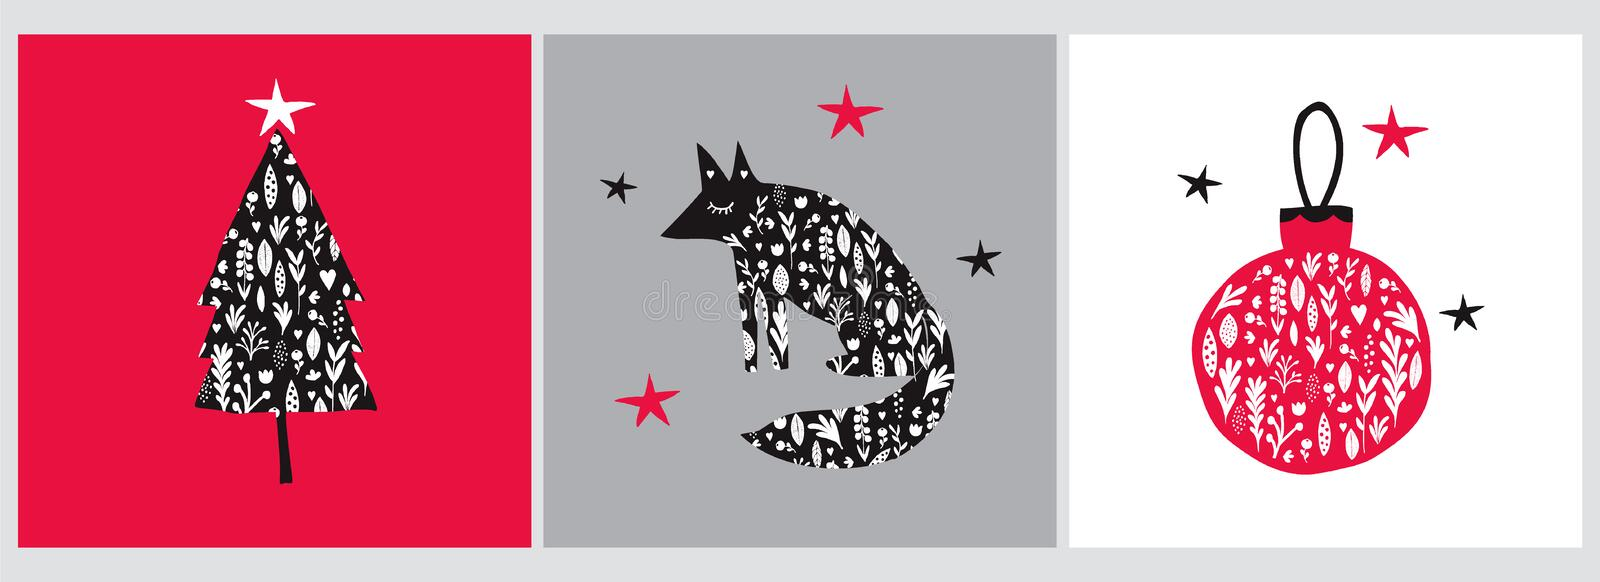 Christmas Vector Illustrations with Red and Black Floral Bauble, Fox and Christmas Tree. vector illustration